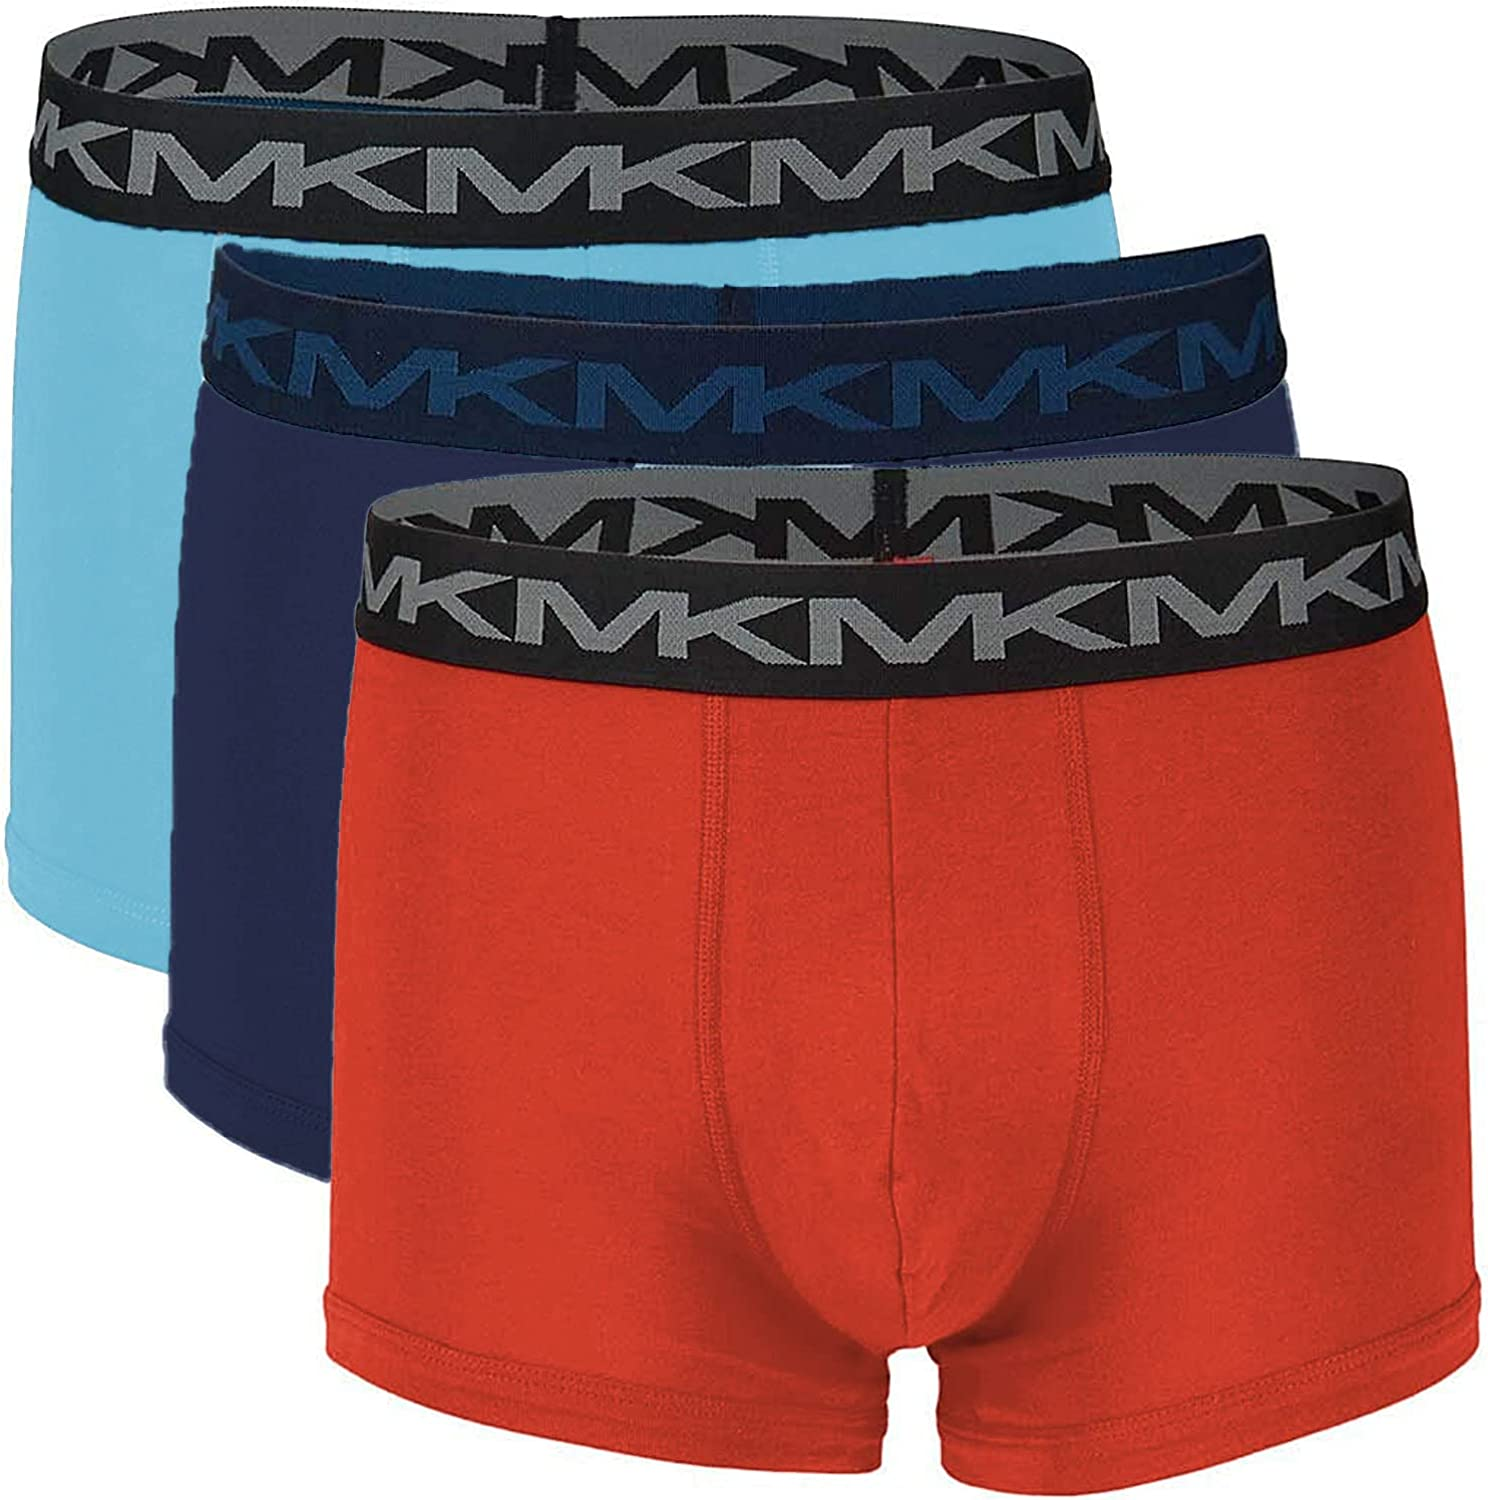 Michael Kors Men`s Stretch Factor Briefs Pack Boxer Low price Fixed price for sale 3